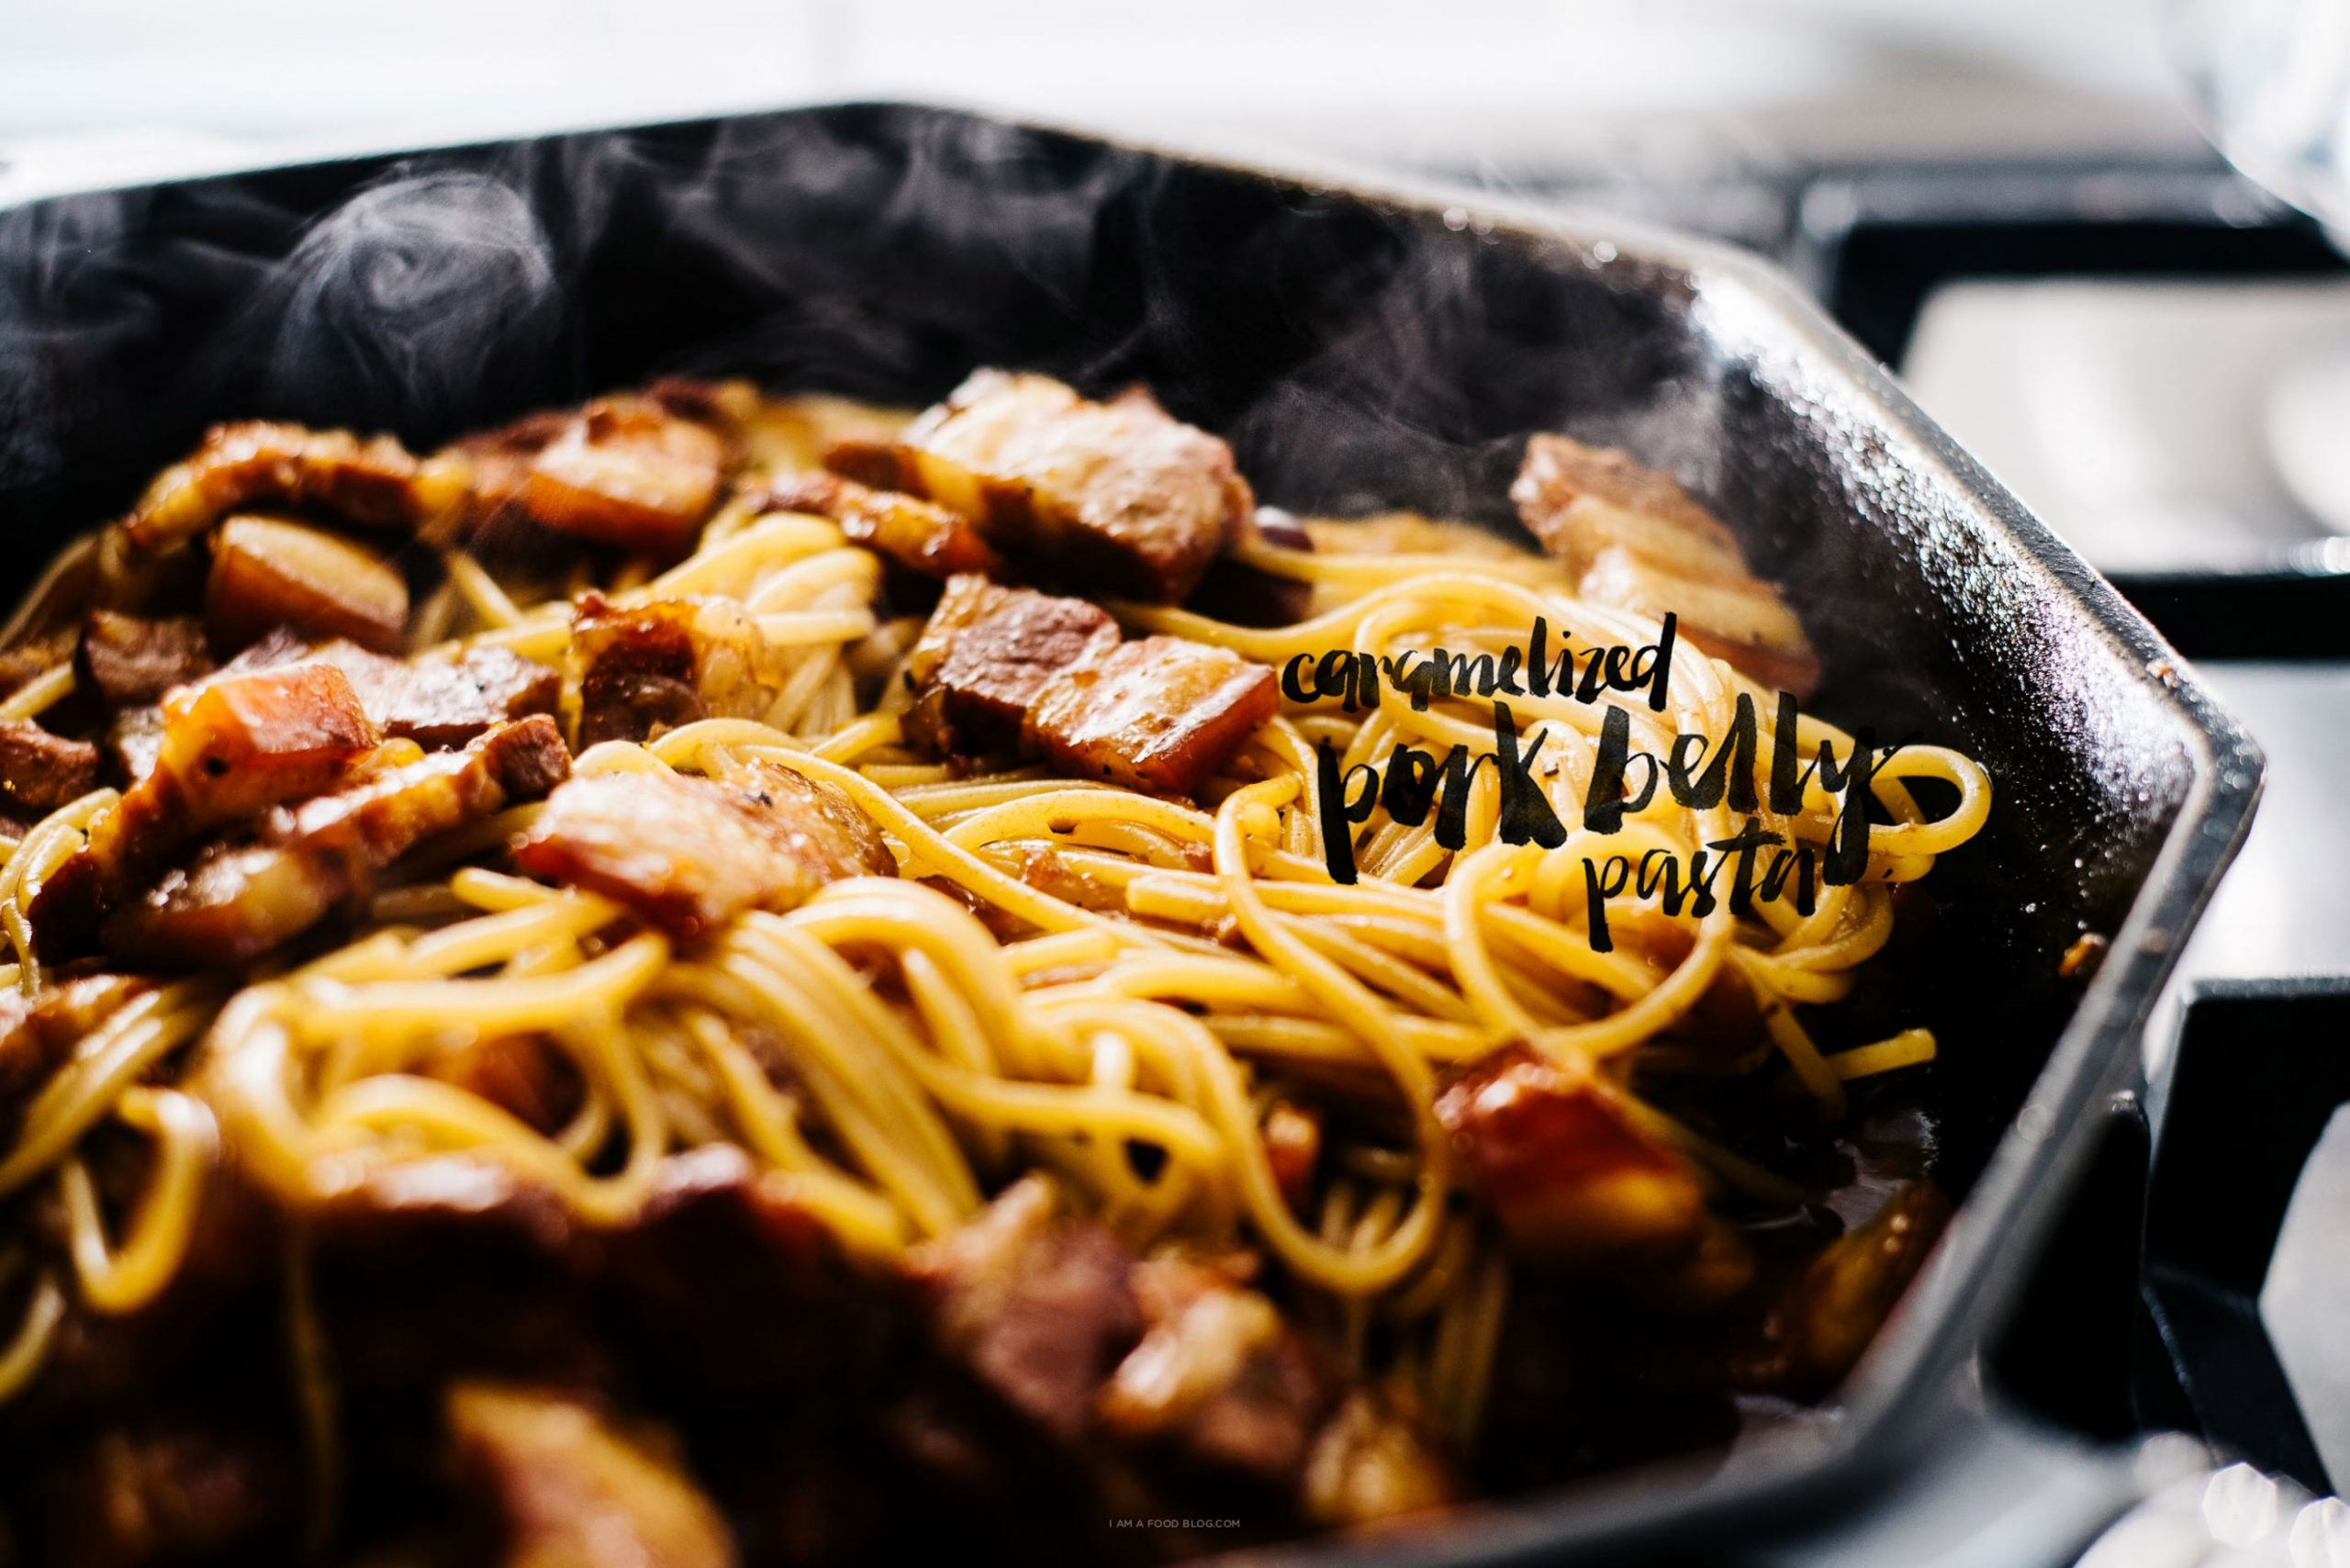 Vietnamese Caramelized Pork Belly Pasta Recipe - Recipe Pork Pasta